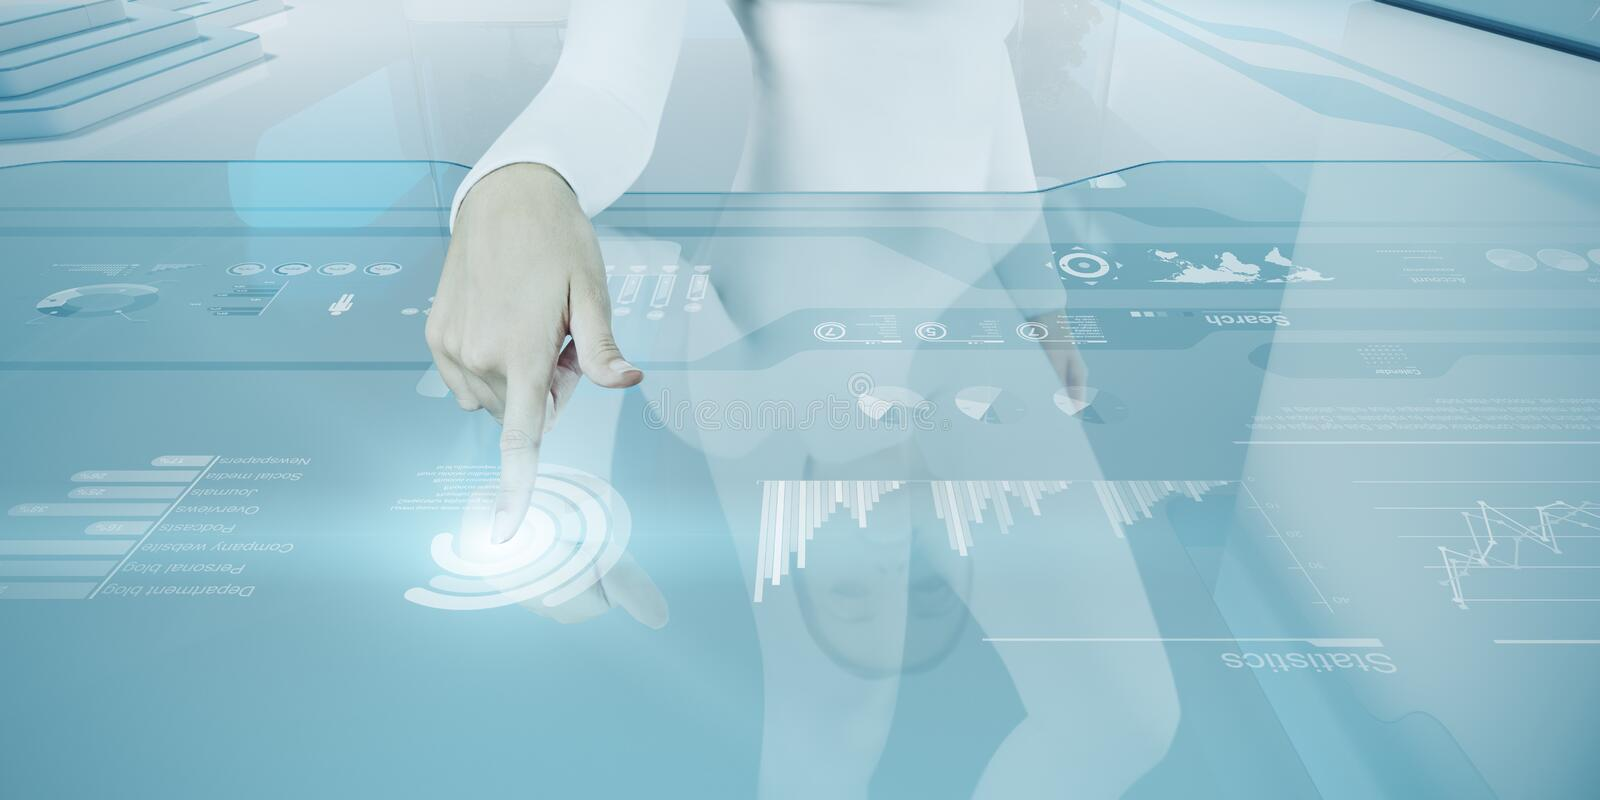 Future technology touchscreen interface. royalty free stock image